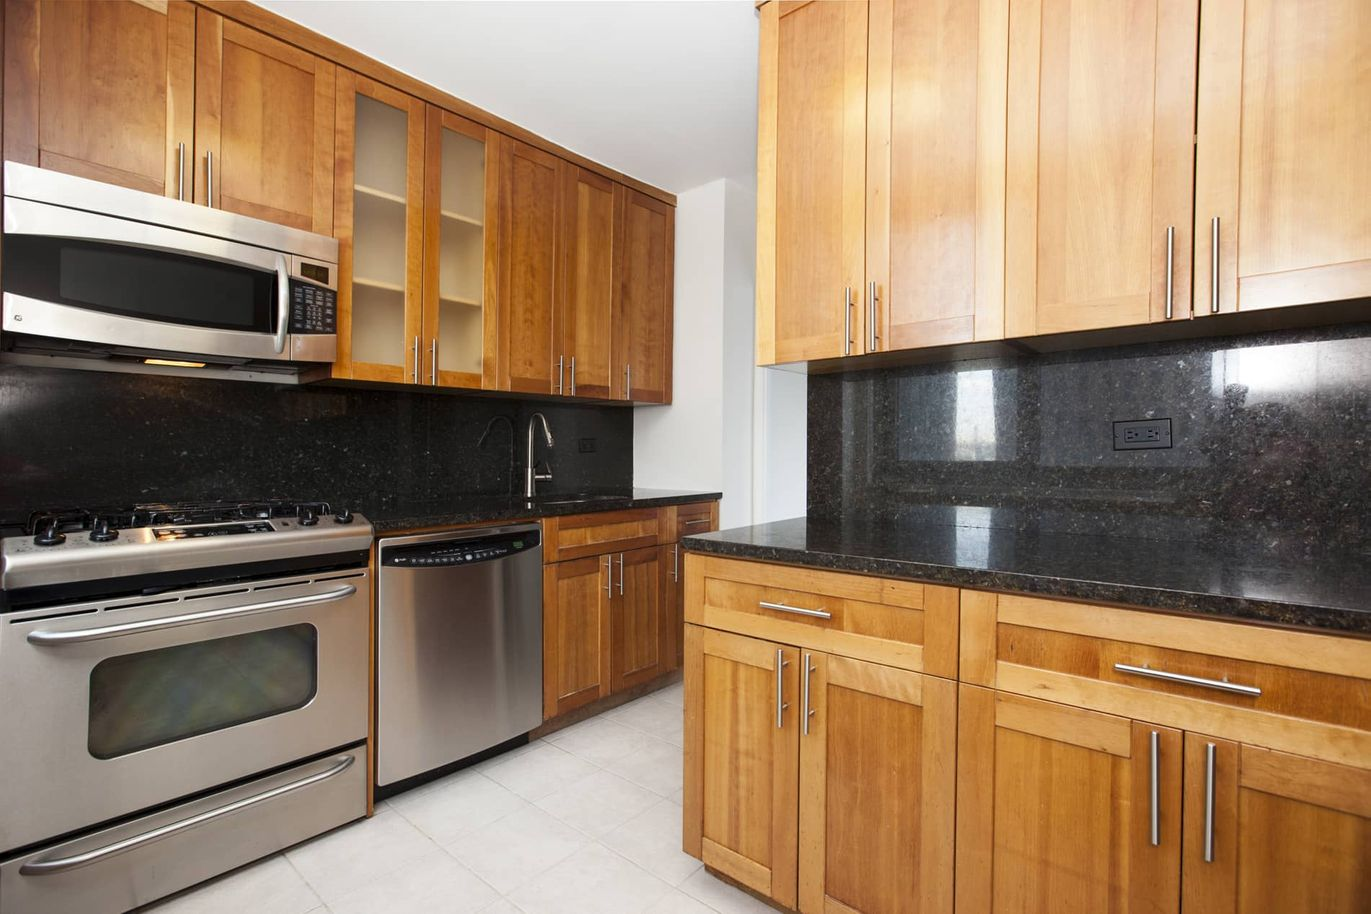 View 34, 401 East 34th Street